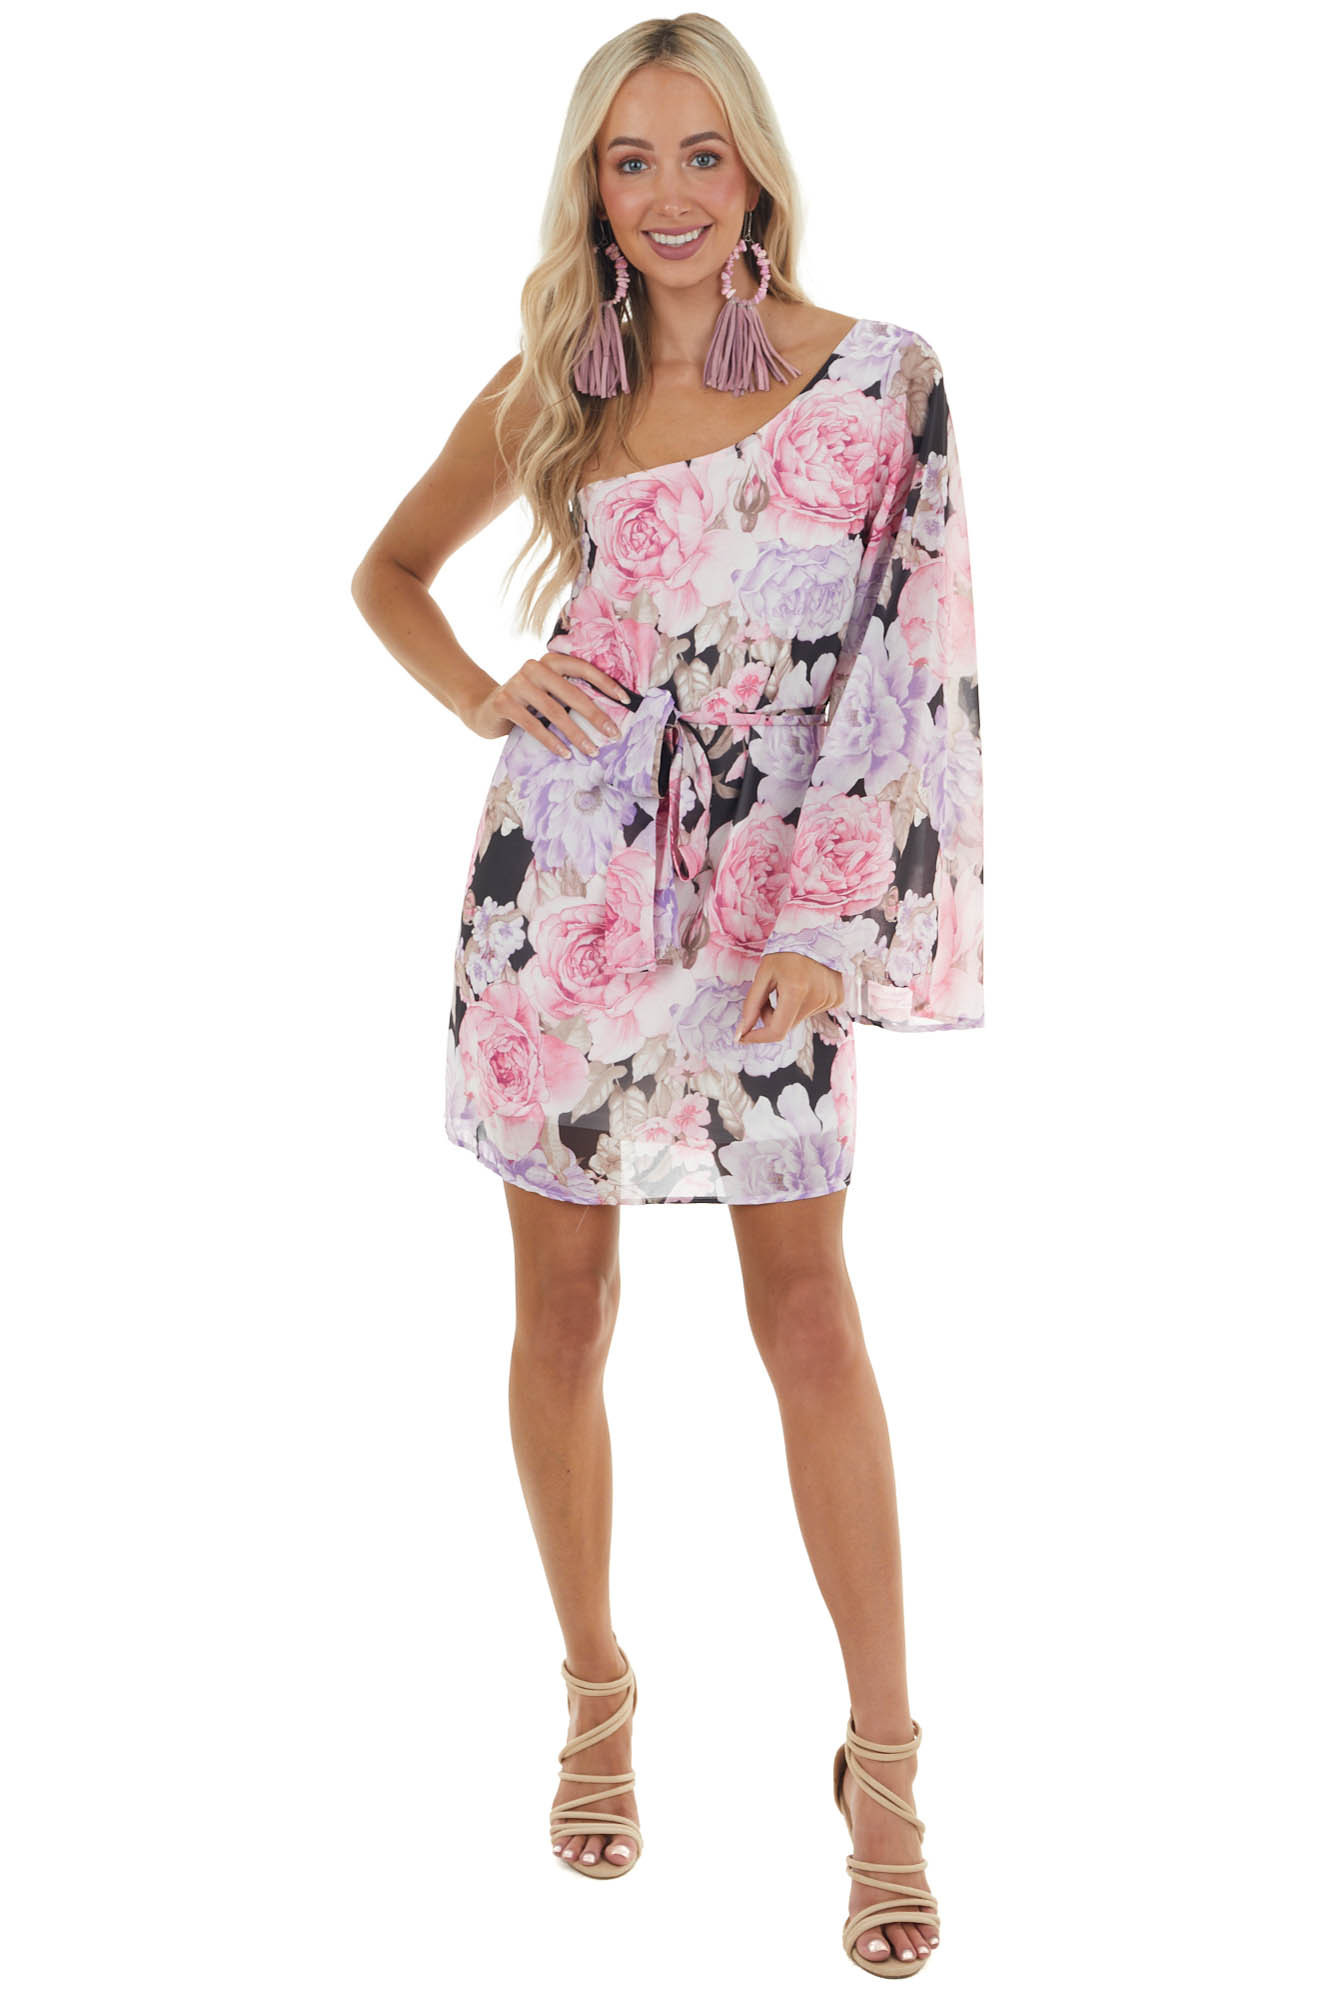 Carnation and Iris Floral Print One Shoulder Woven Dress